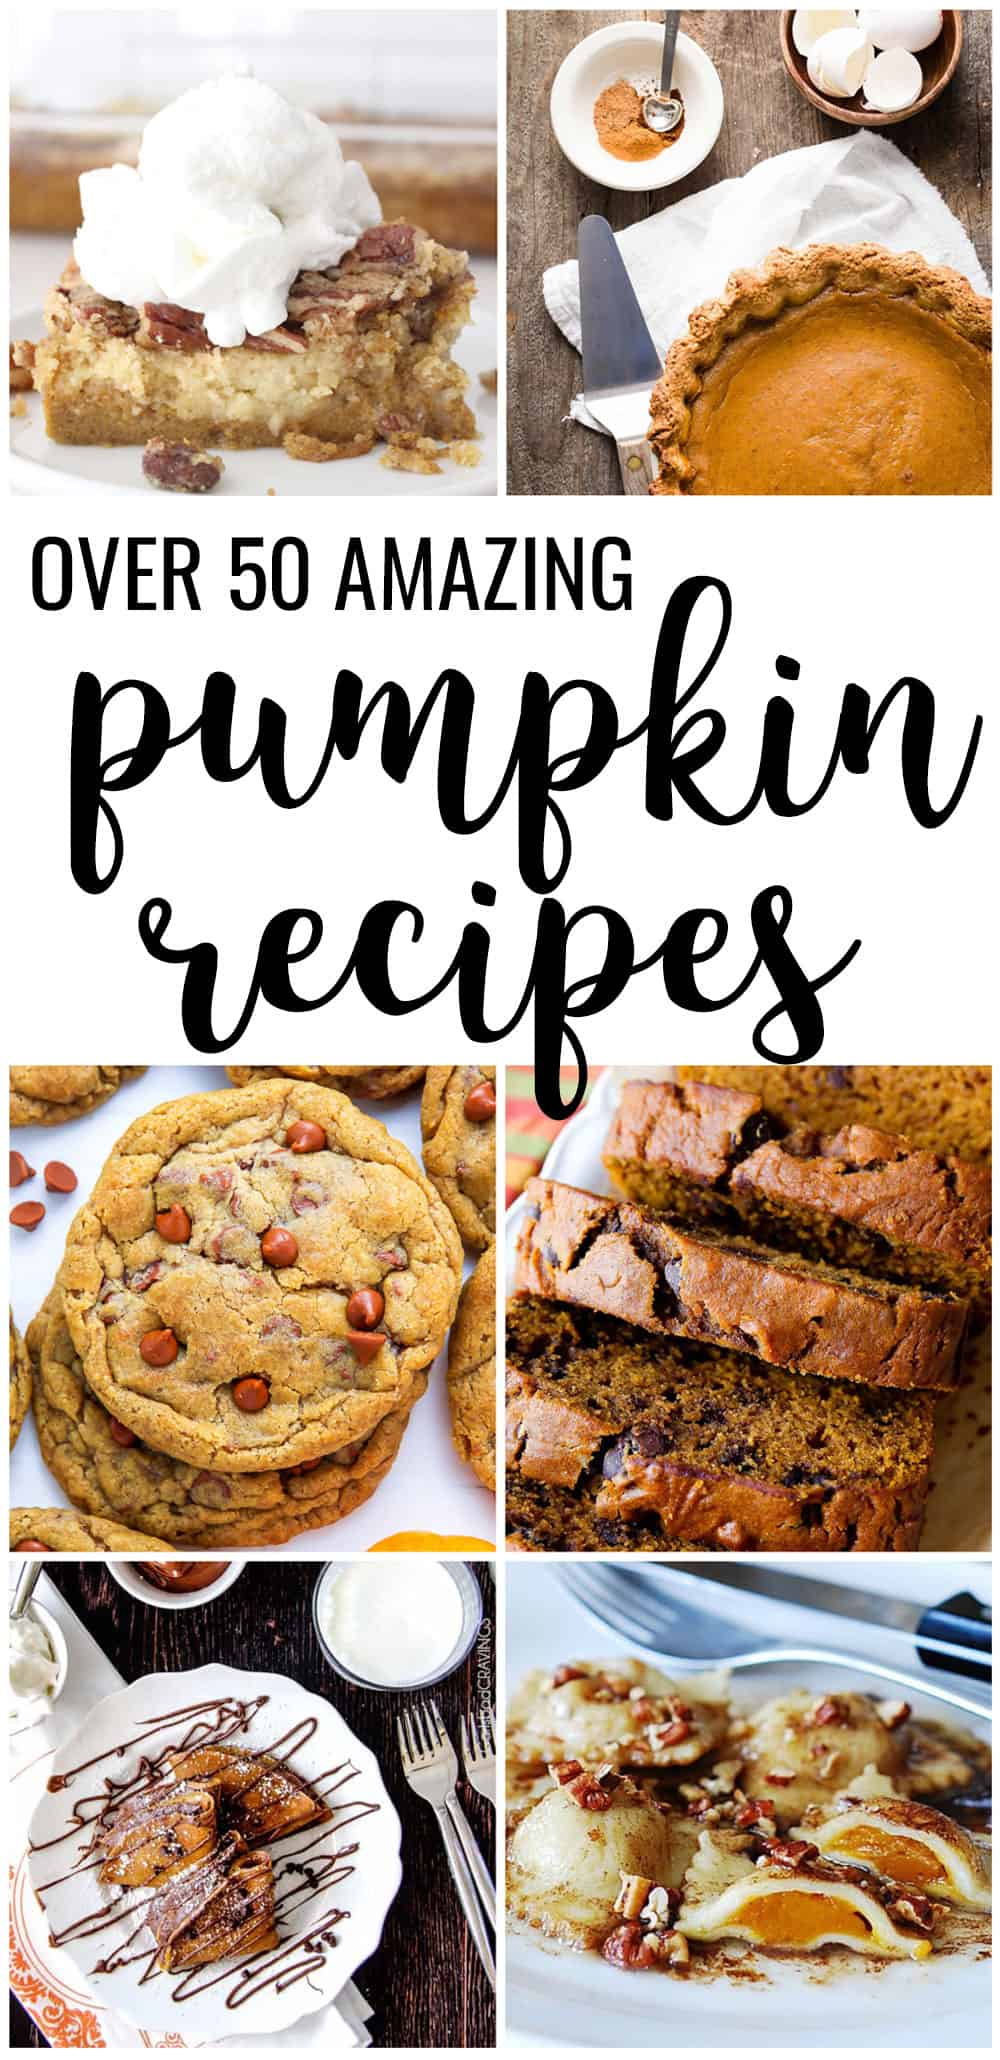 pumpkin-recipes-amazing